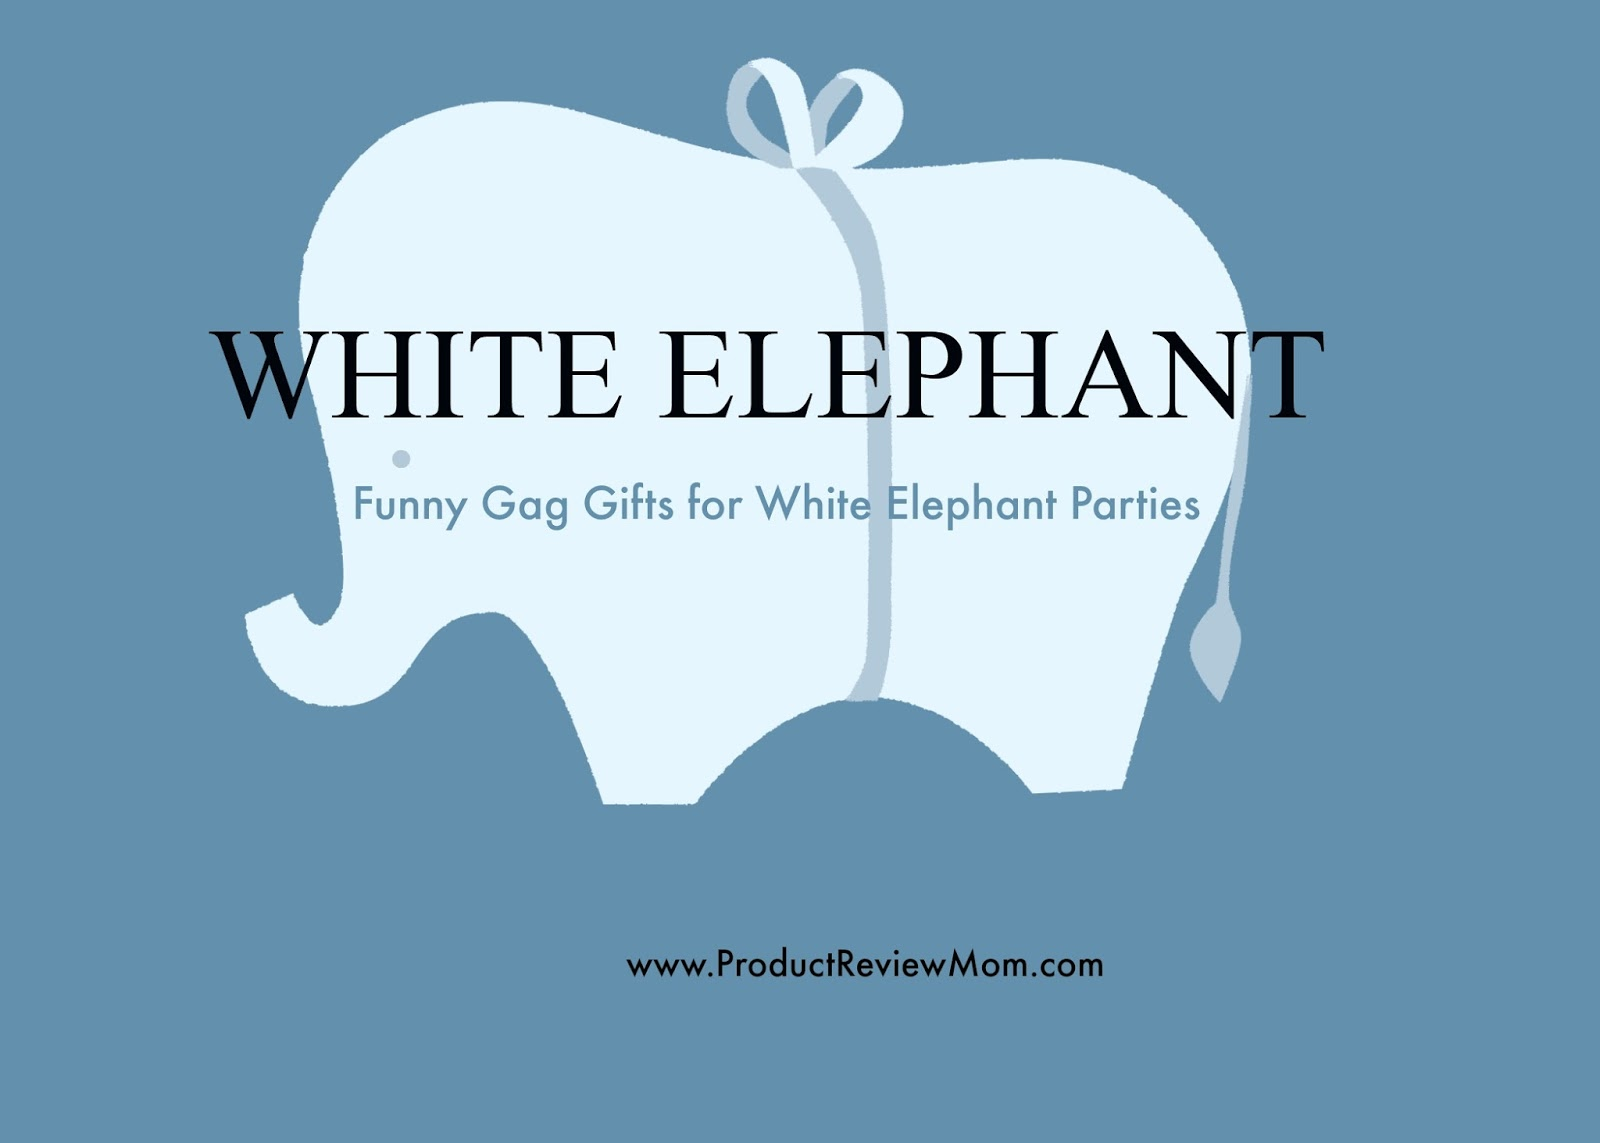 Funny Gag Gifts for White Elephant Parties  via  www.productreviewmom.com